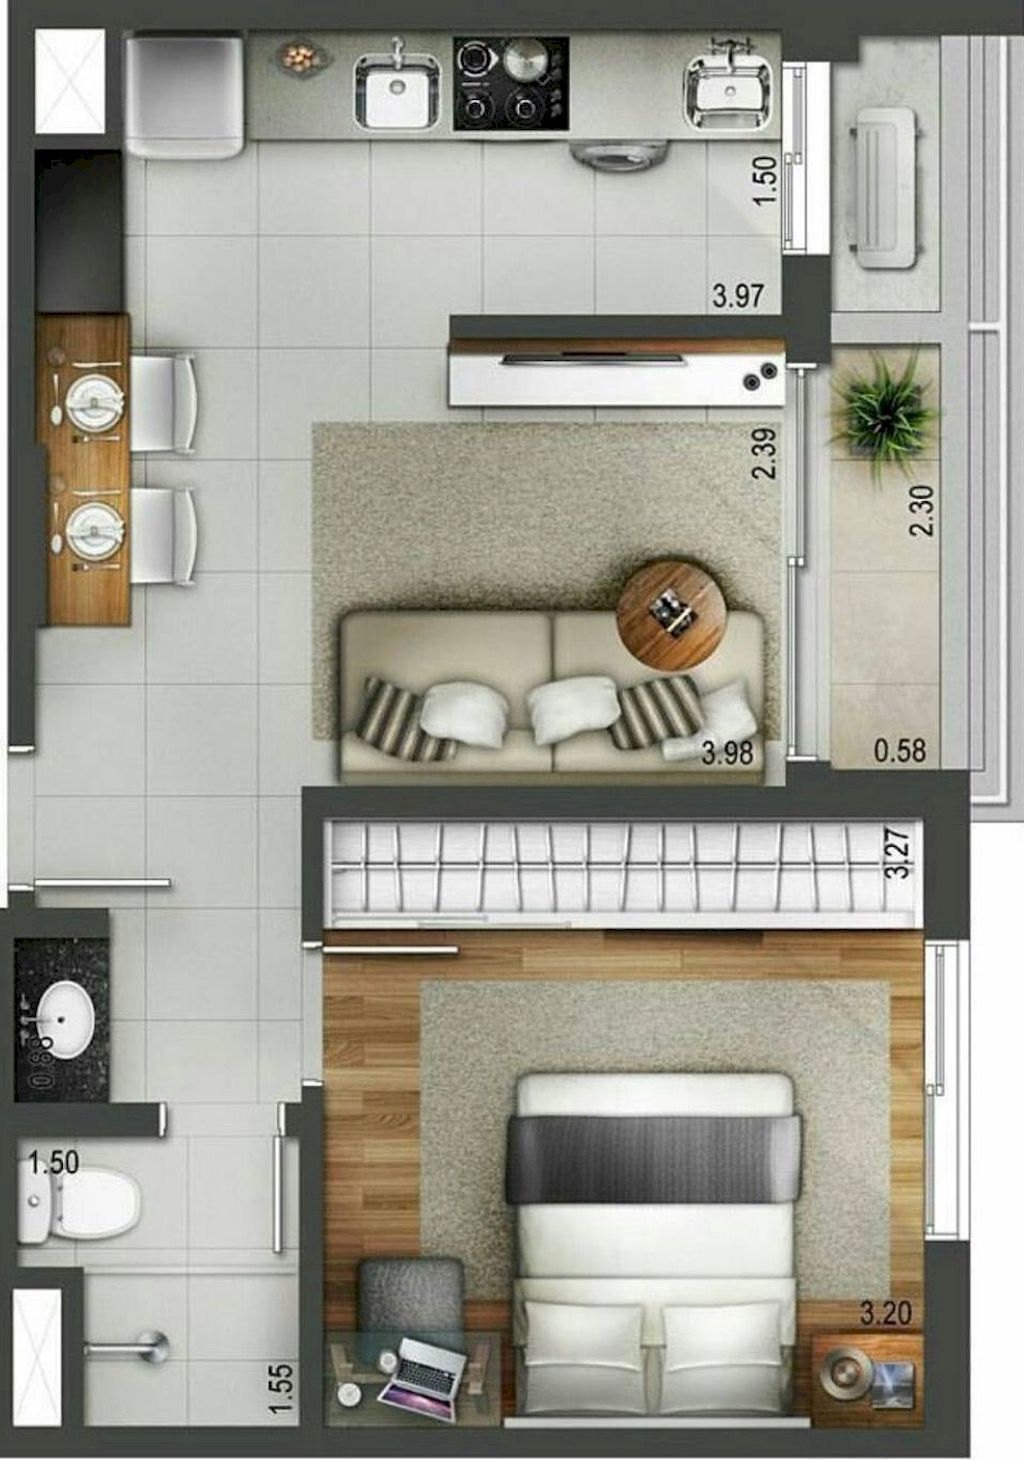 Small apartment plans small apartment layout small house layout small apartment interior design